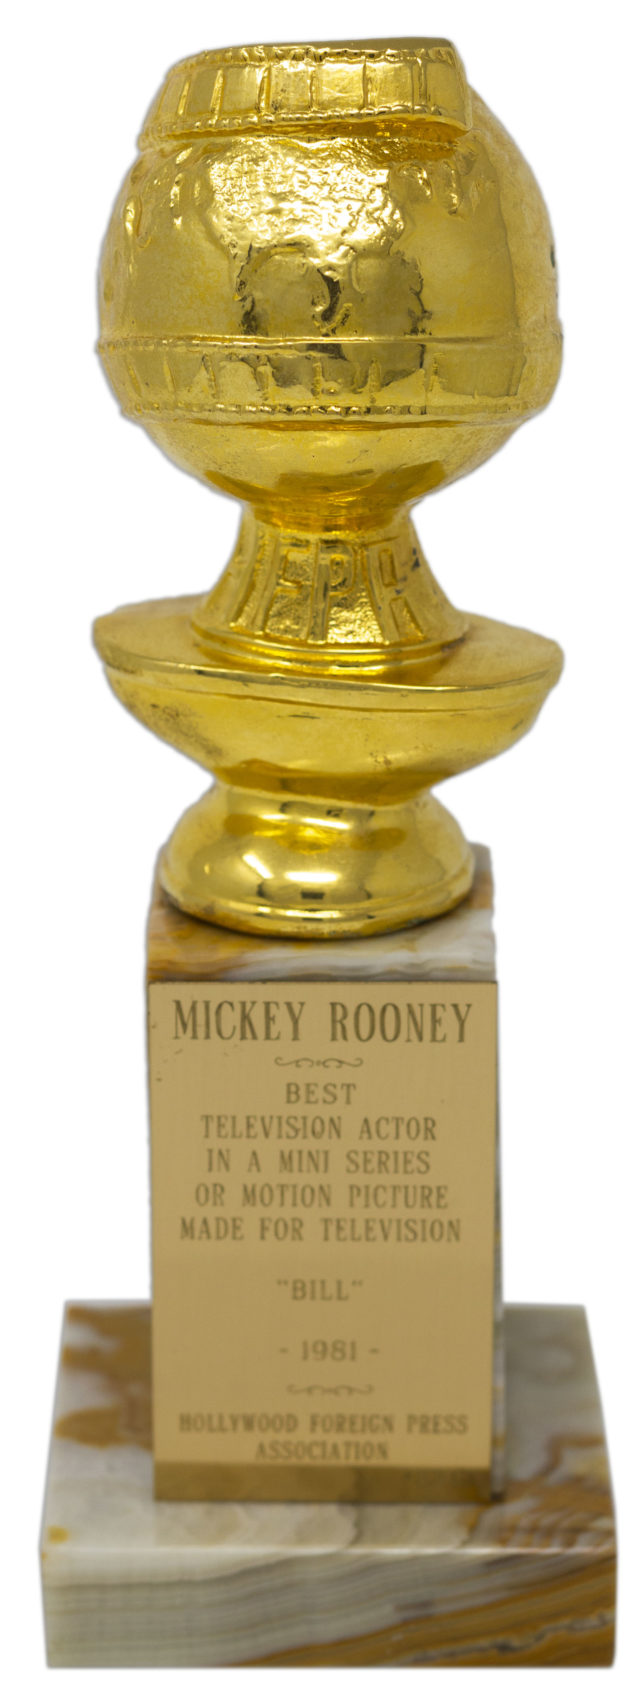 Mickey Rooney Golden Globe